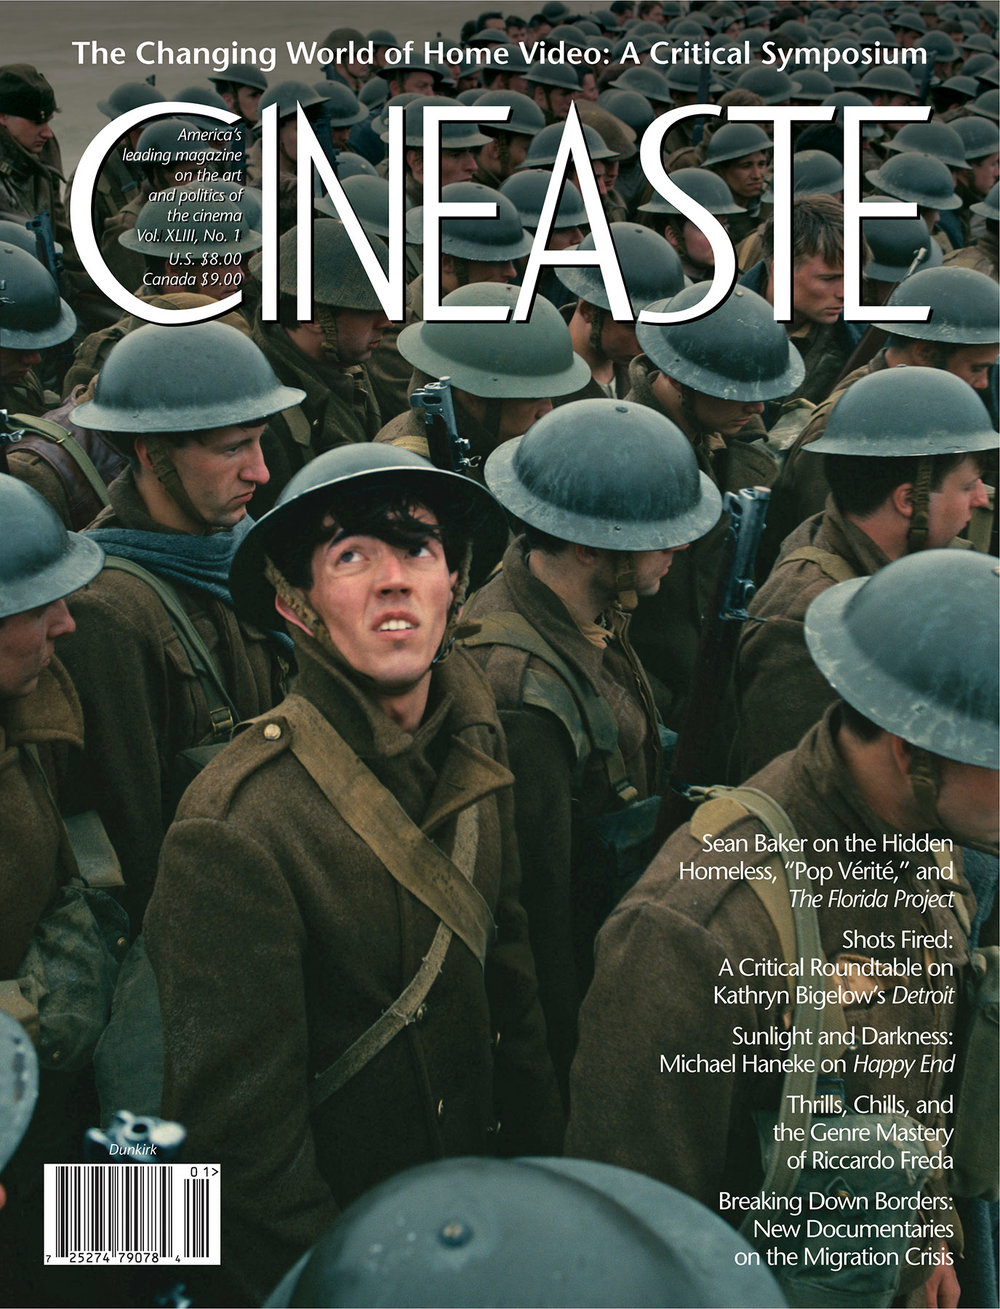 CINEASTE WINTER 2017 copy.jpg